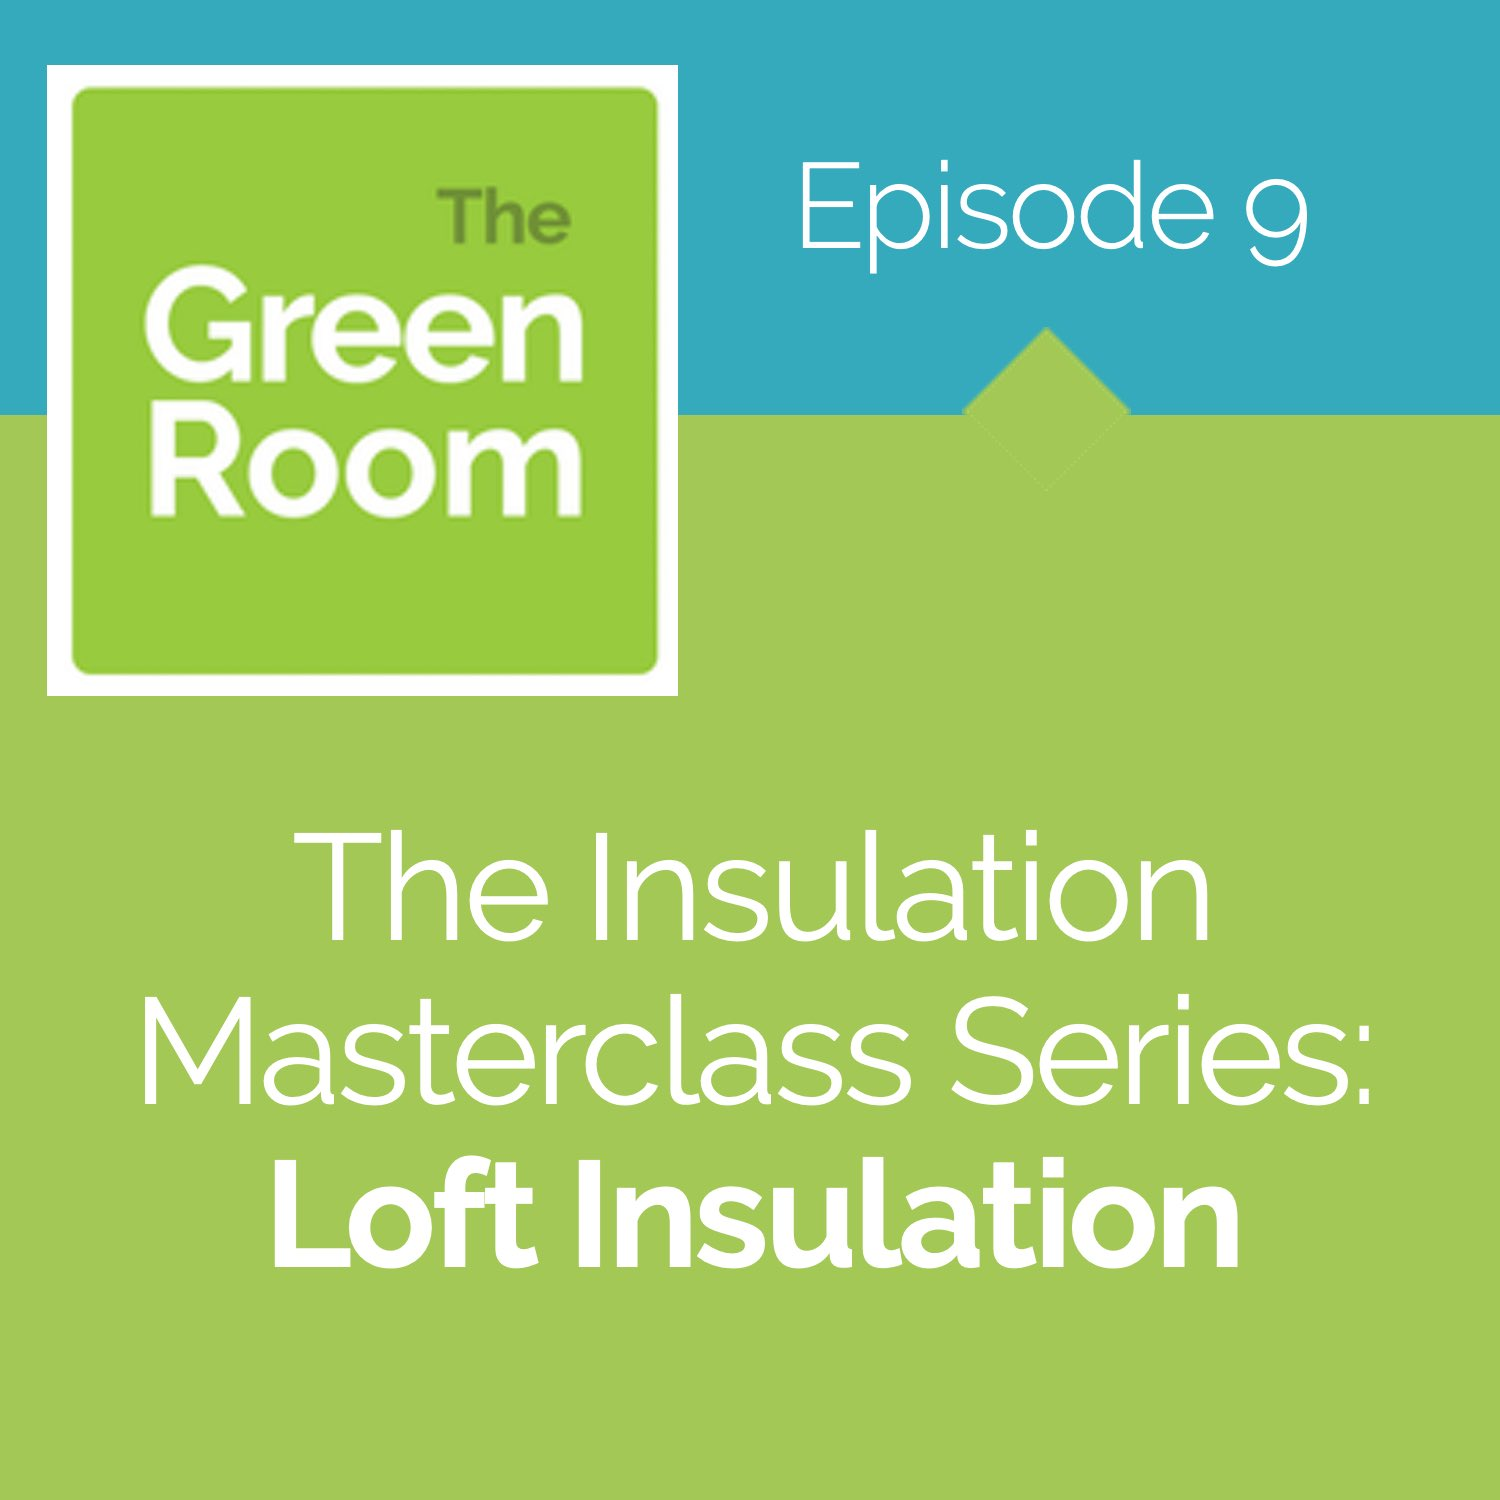 The Insulation Masterclass Series: Loft Insulation